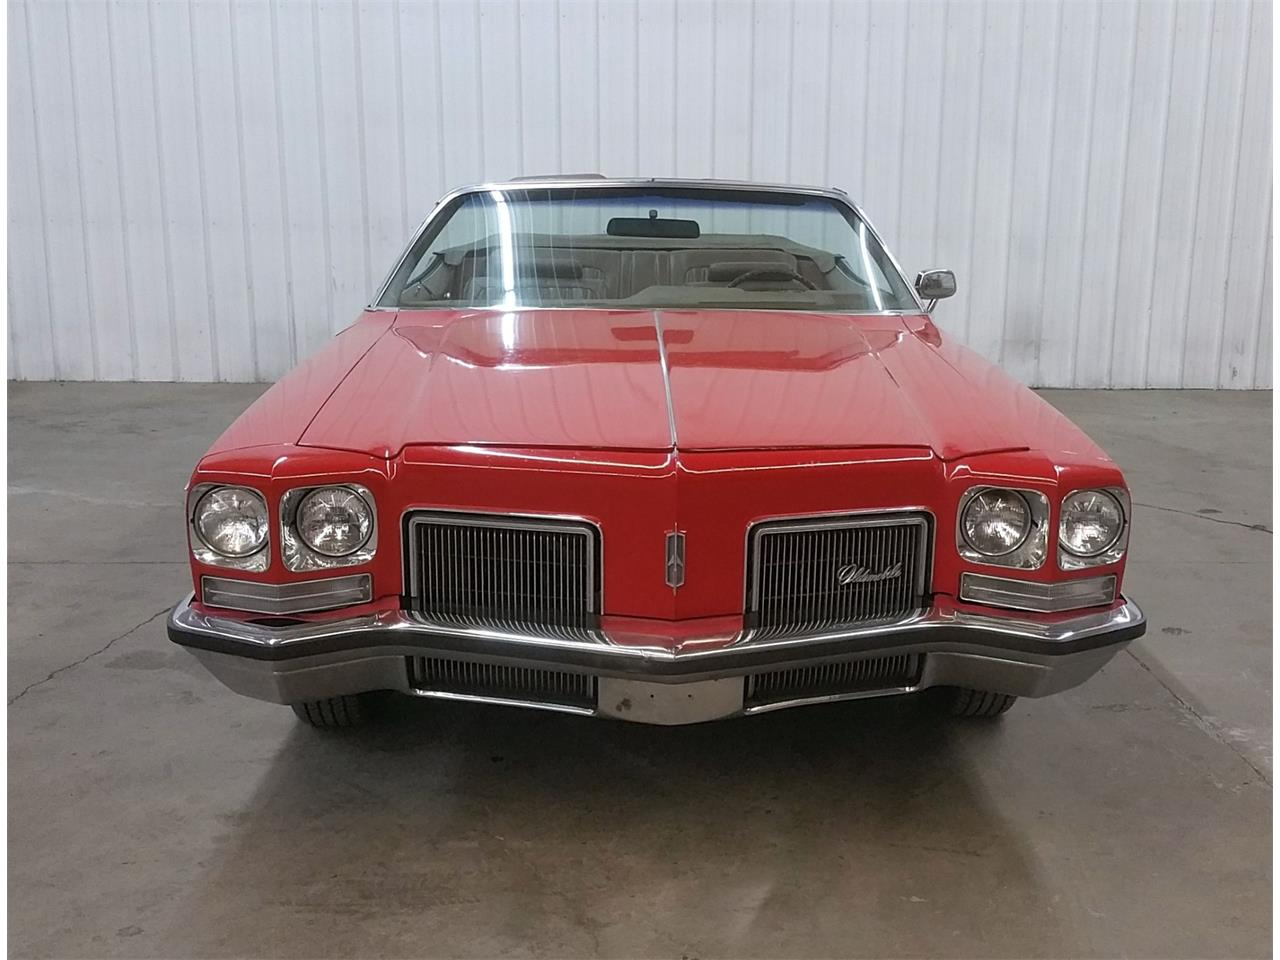 Large Picture of Classic '72 Oldsmobile 2-Dr Sedan located in Maple Lake Minnesota - $12,950.00 - MO6G